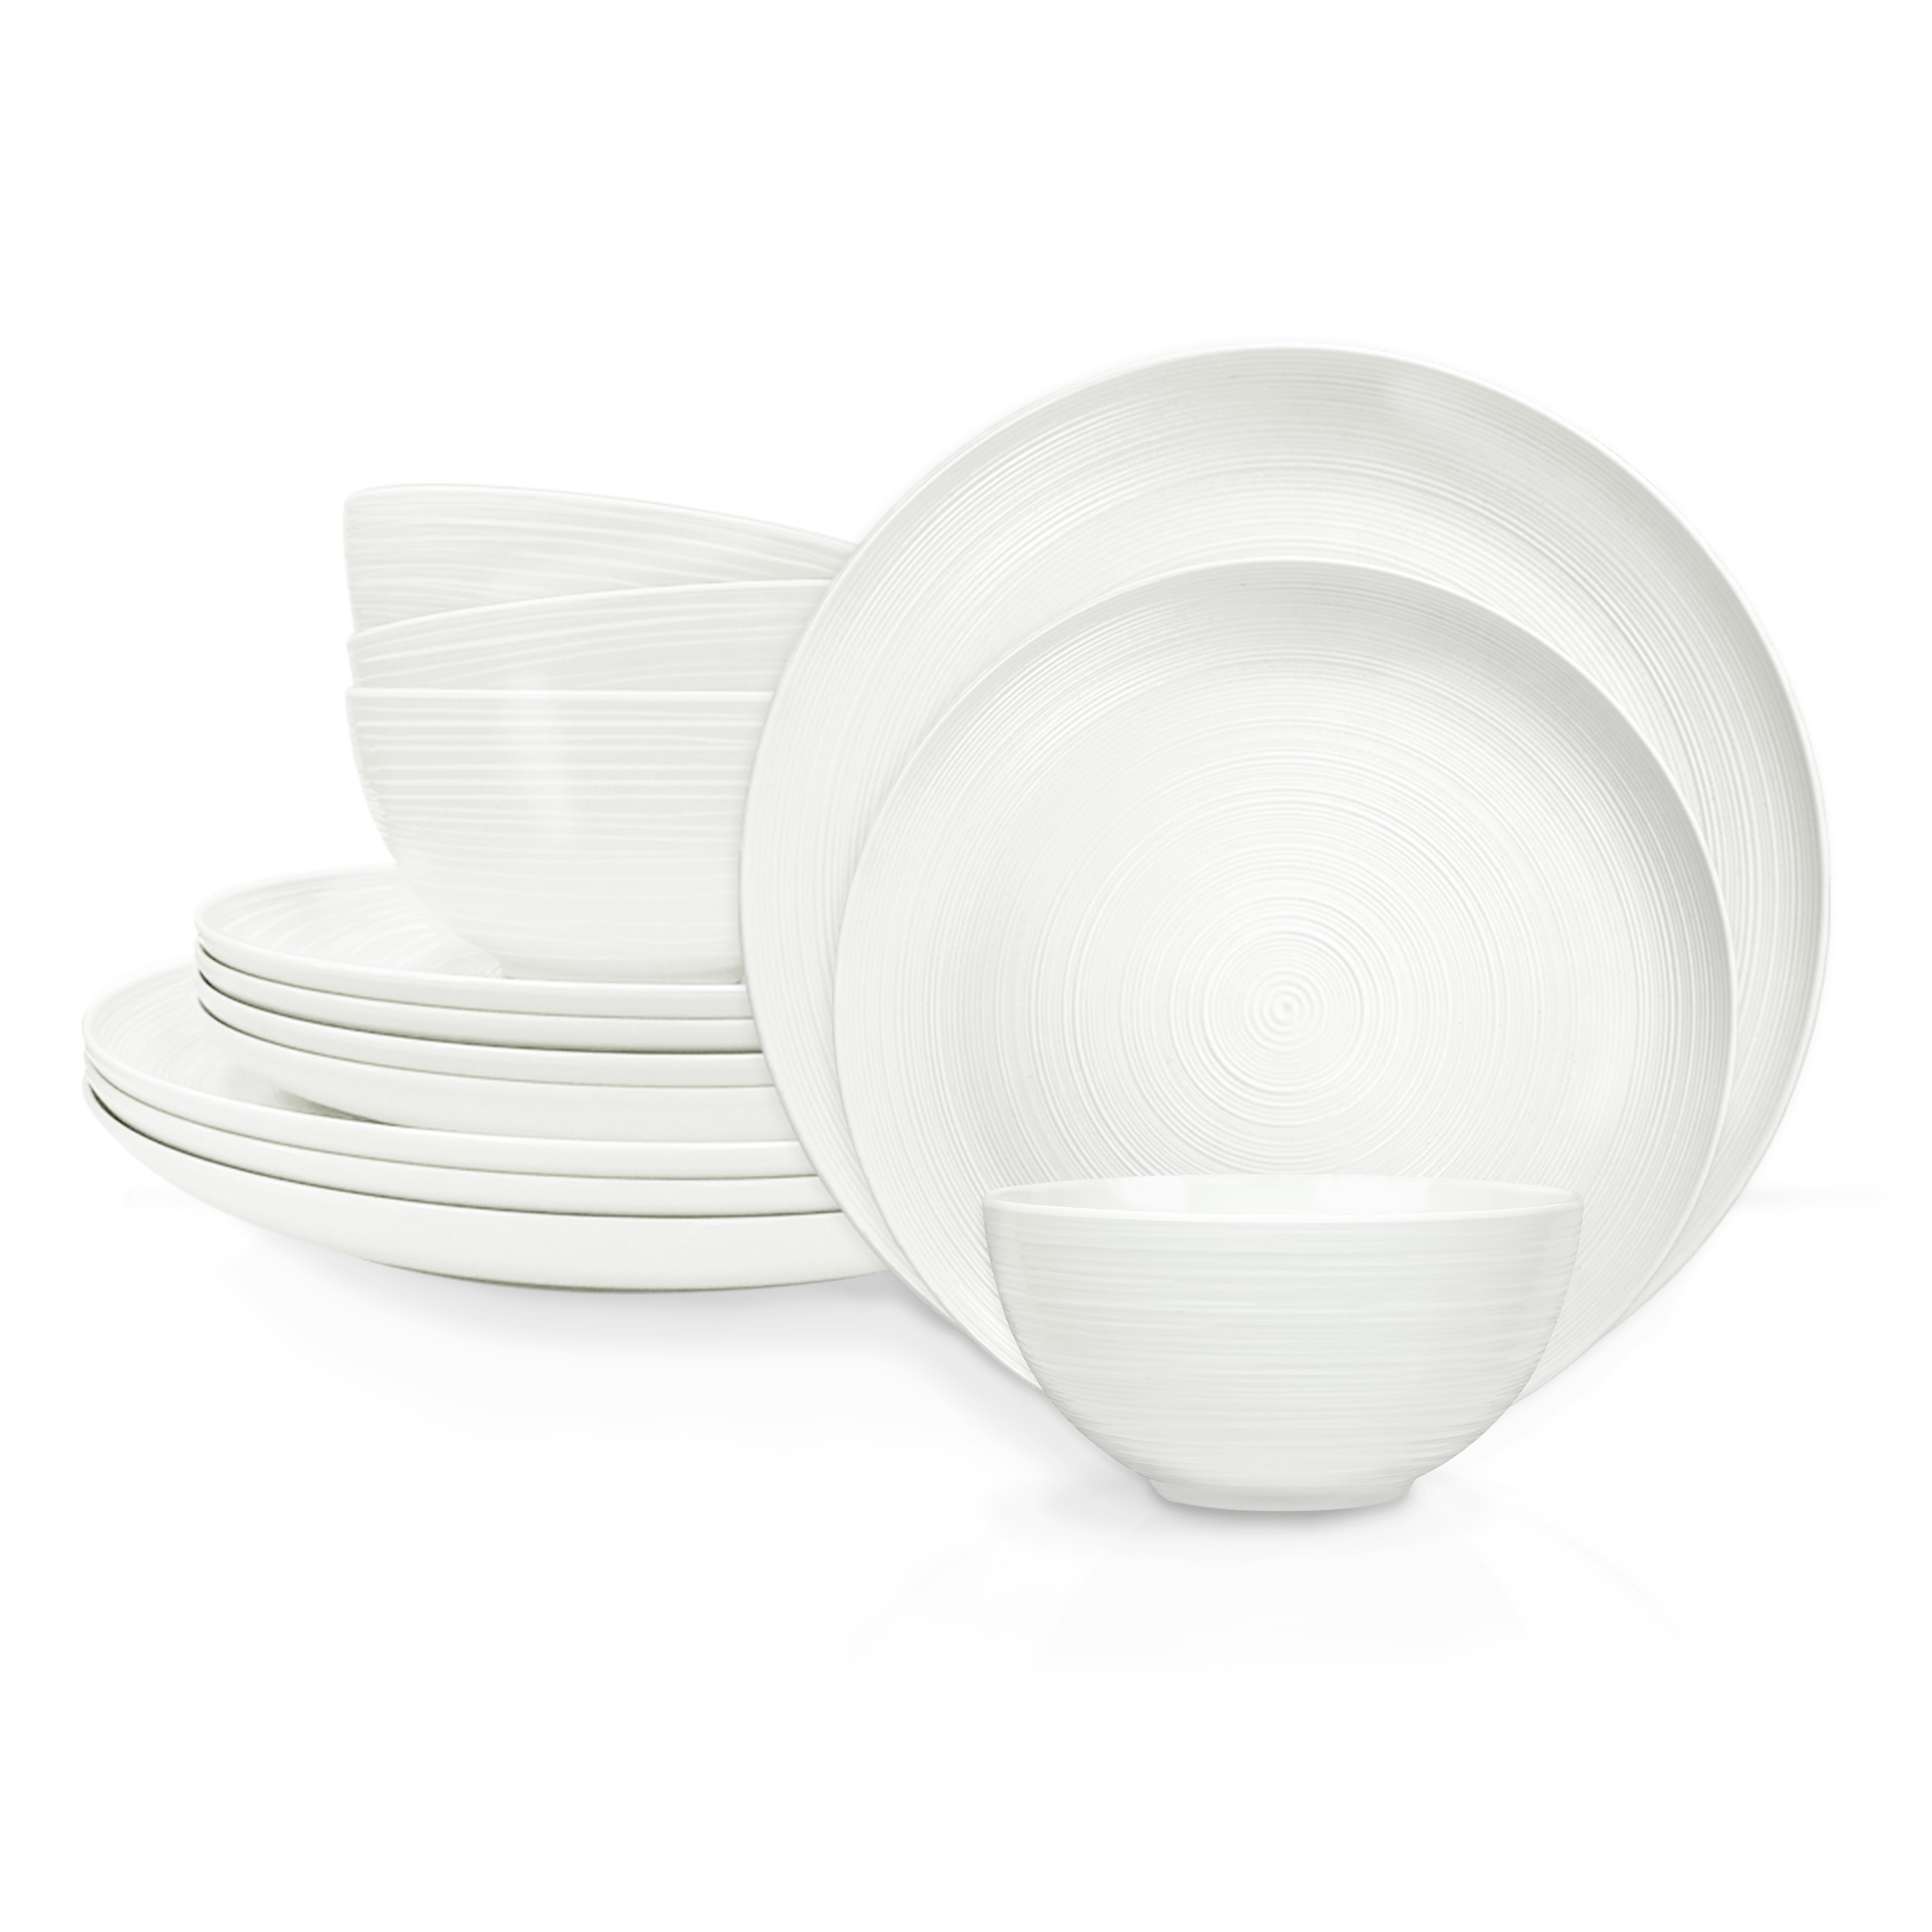 American Conventional Plate & Bowl Sets, White, 12-piece set slideshow image 1